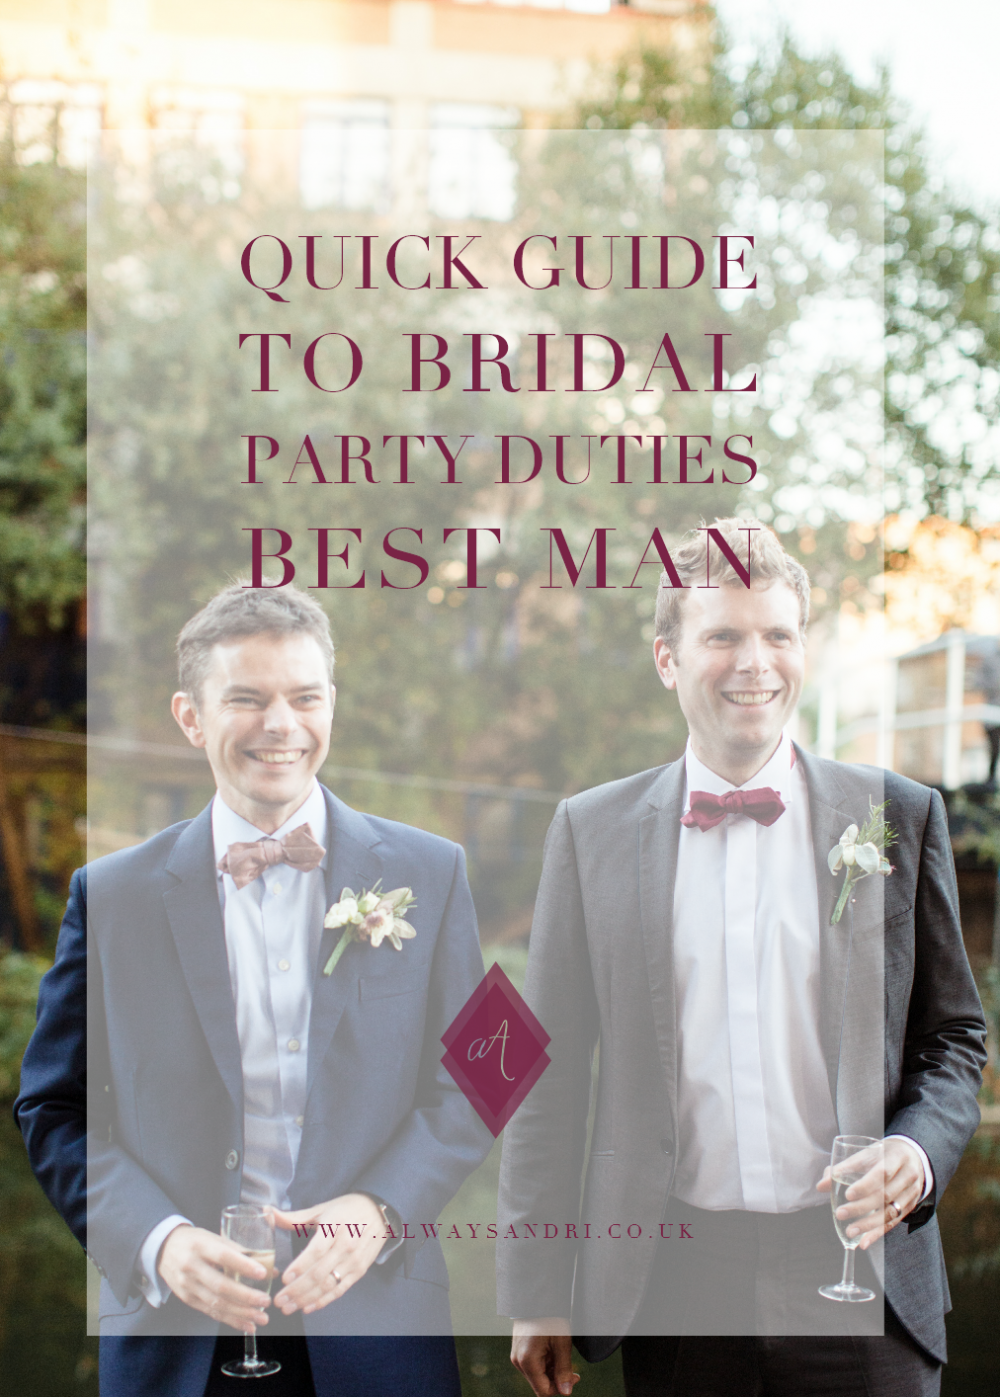 quick-guide-to-bridal-party-duties-best-man1